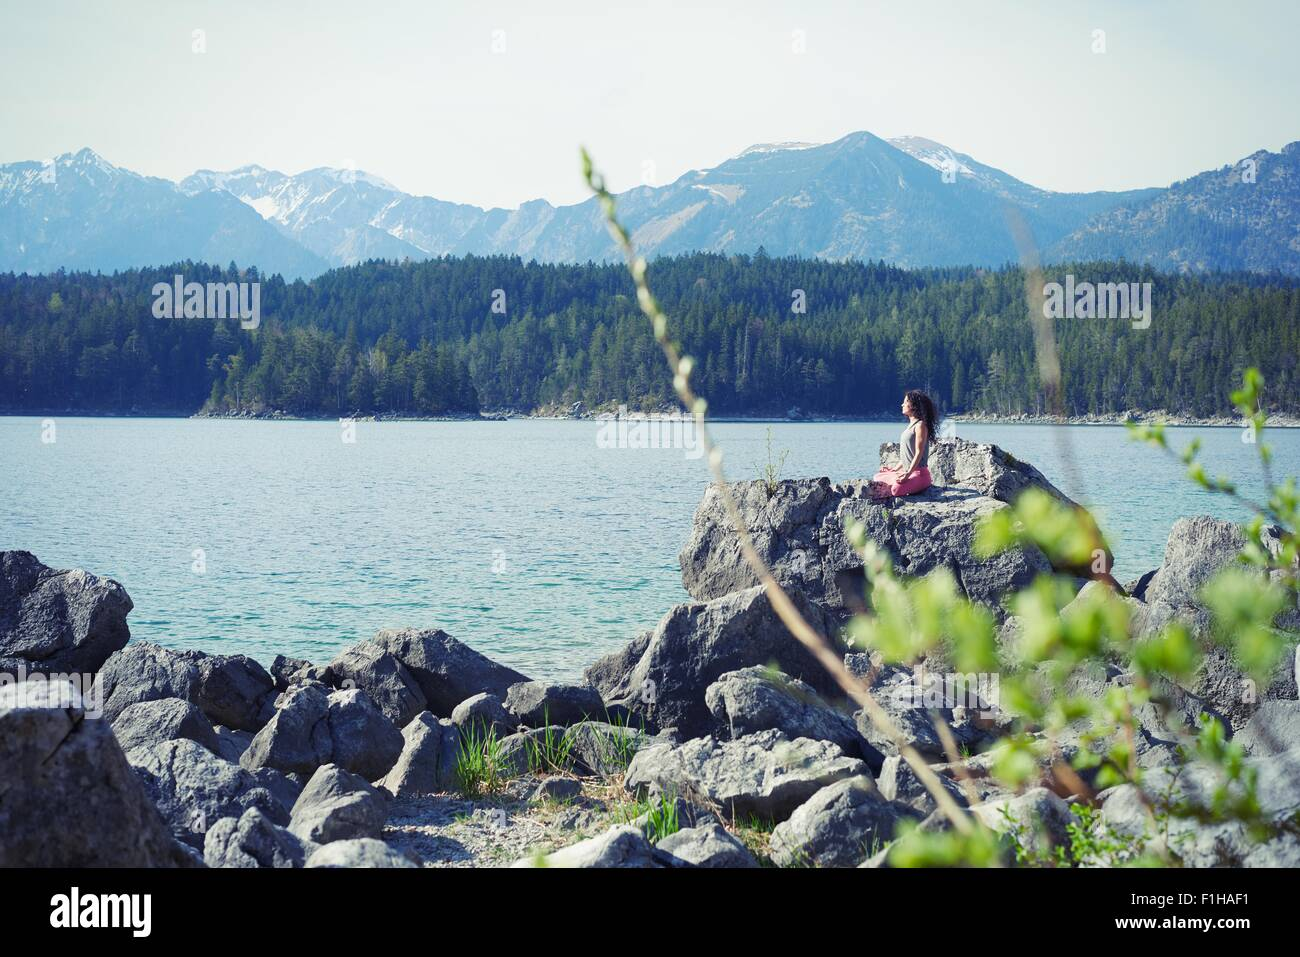 Mid adult woman, sitting on rock, in yoga position - Stock Image